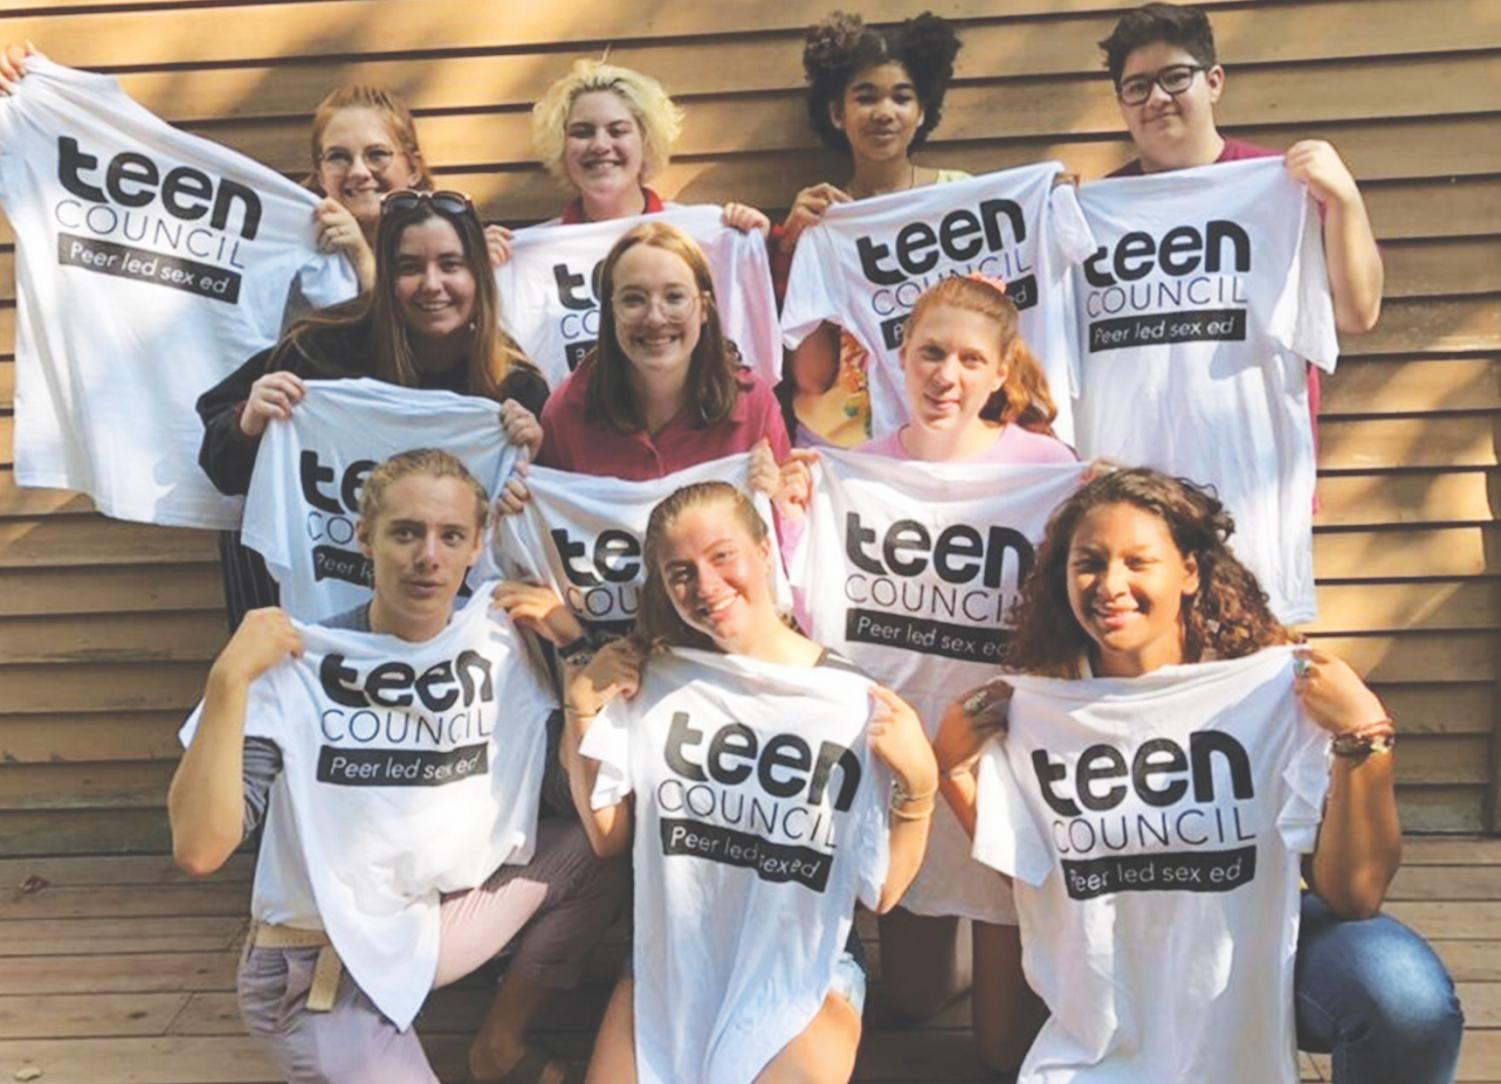 Annabelle Swigert '22, center front, and Planned Parenthood Teen Council sport their new shirts.